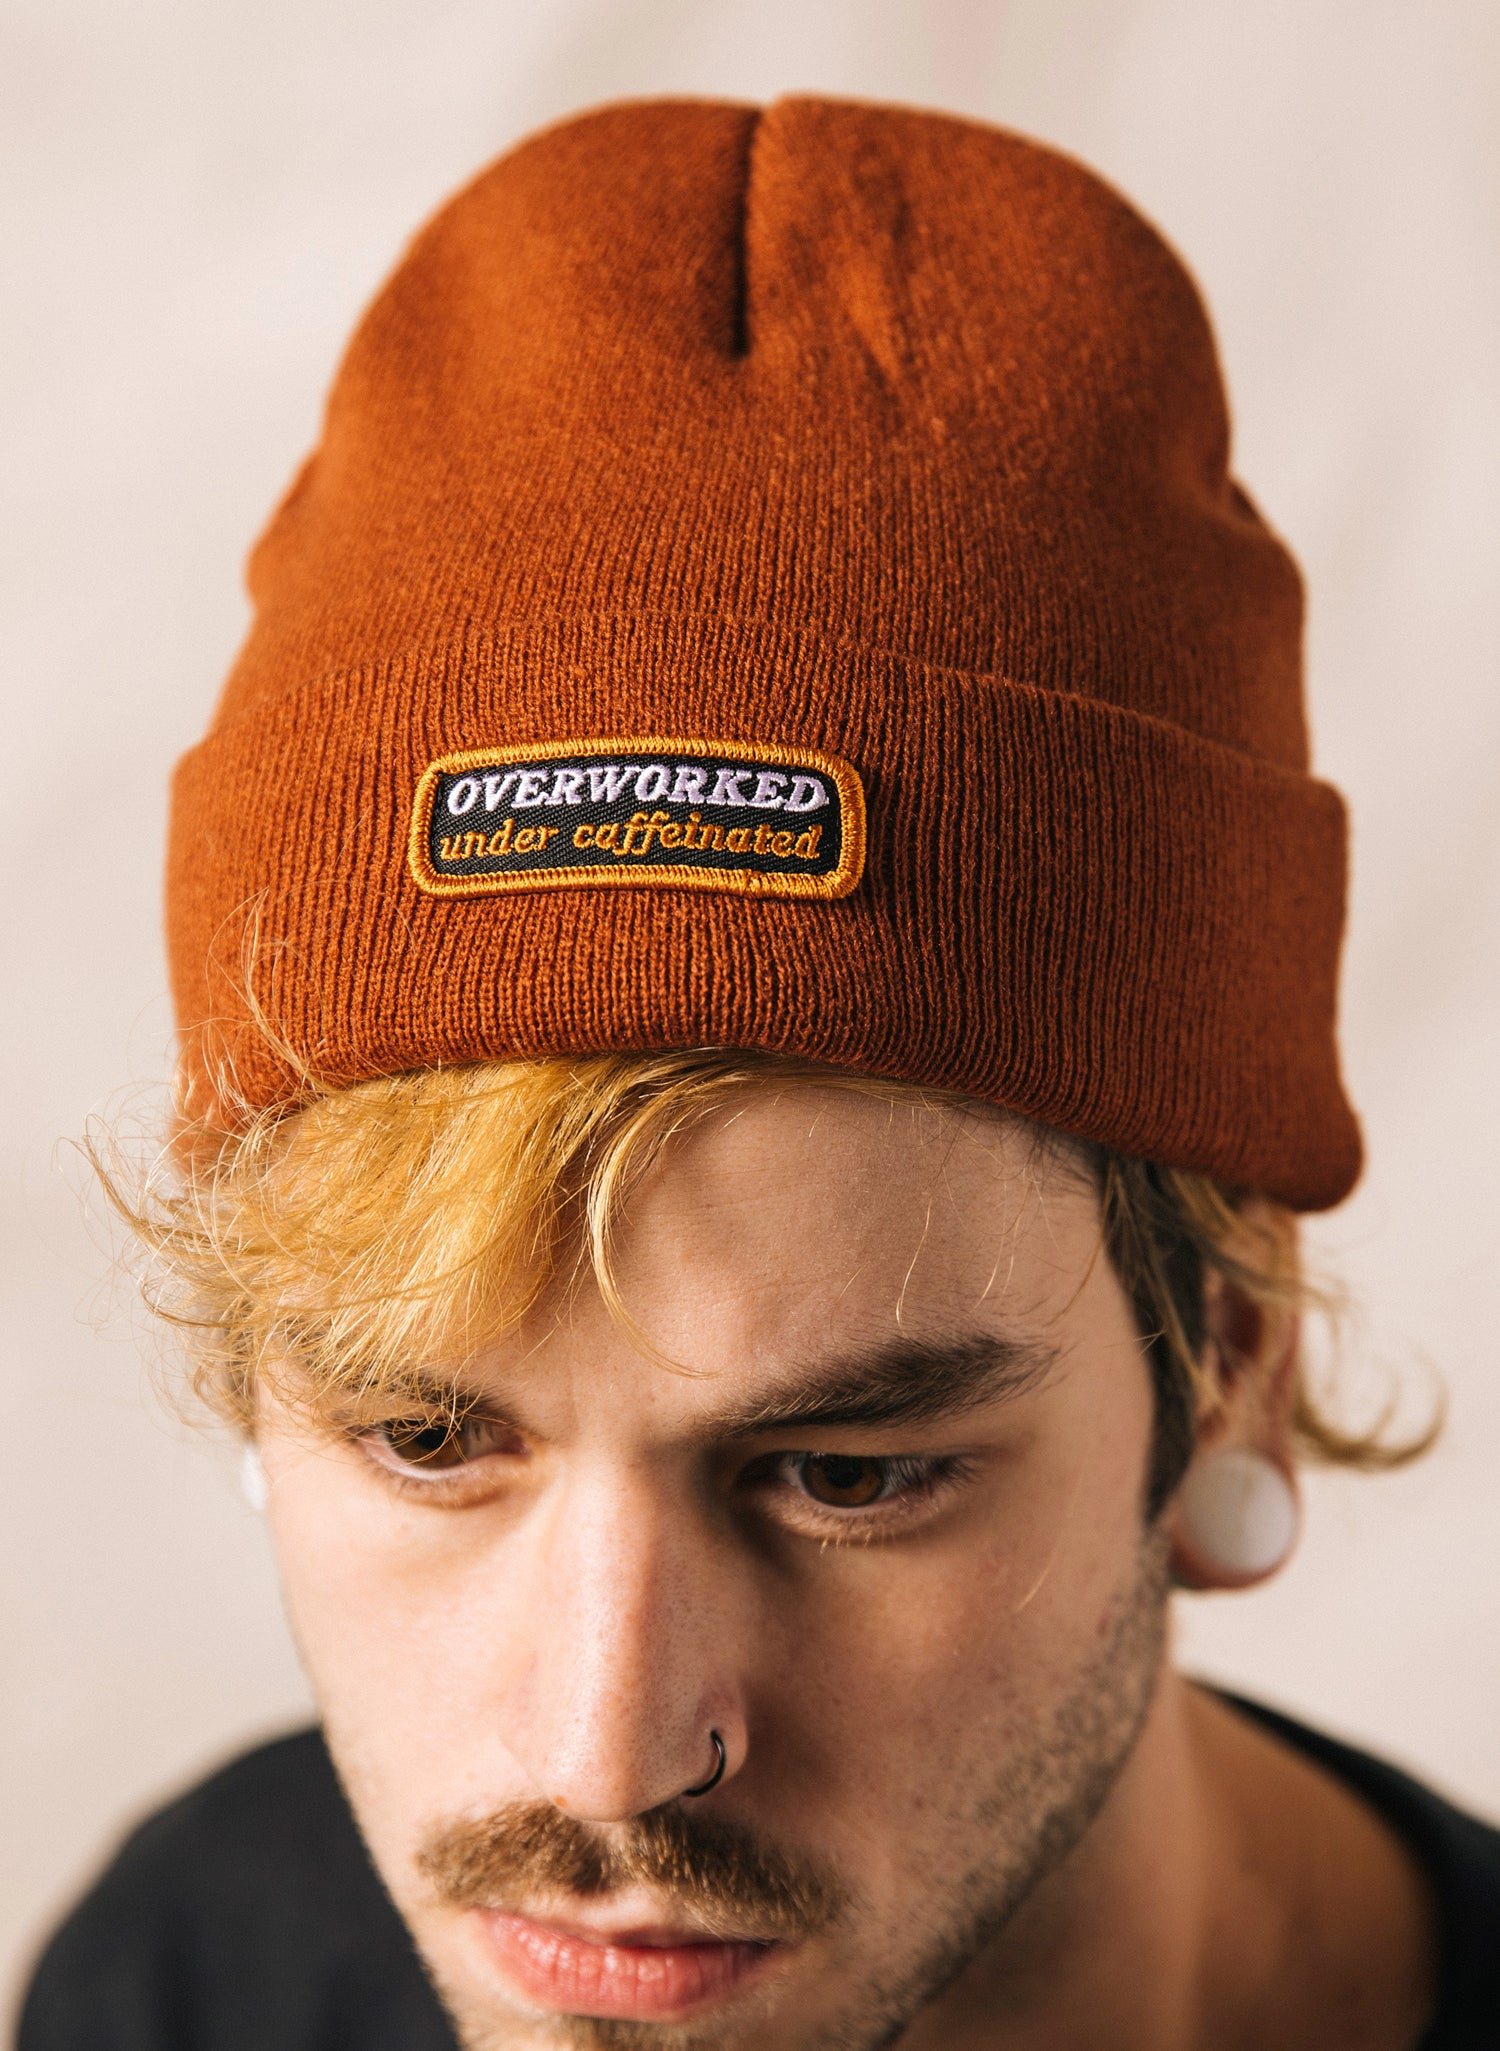 Overworked Under Caffeinated Coffee Barista Always Tired Snarky Knit Beanie Rust